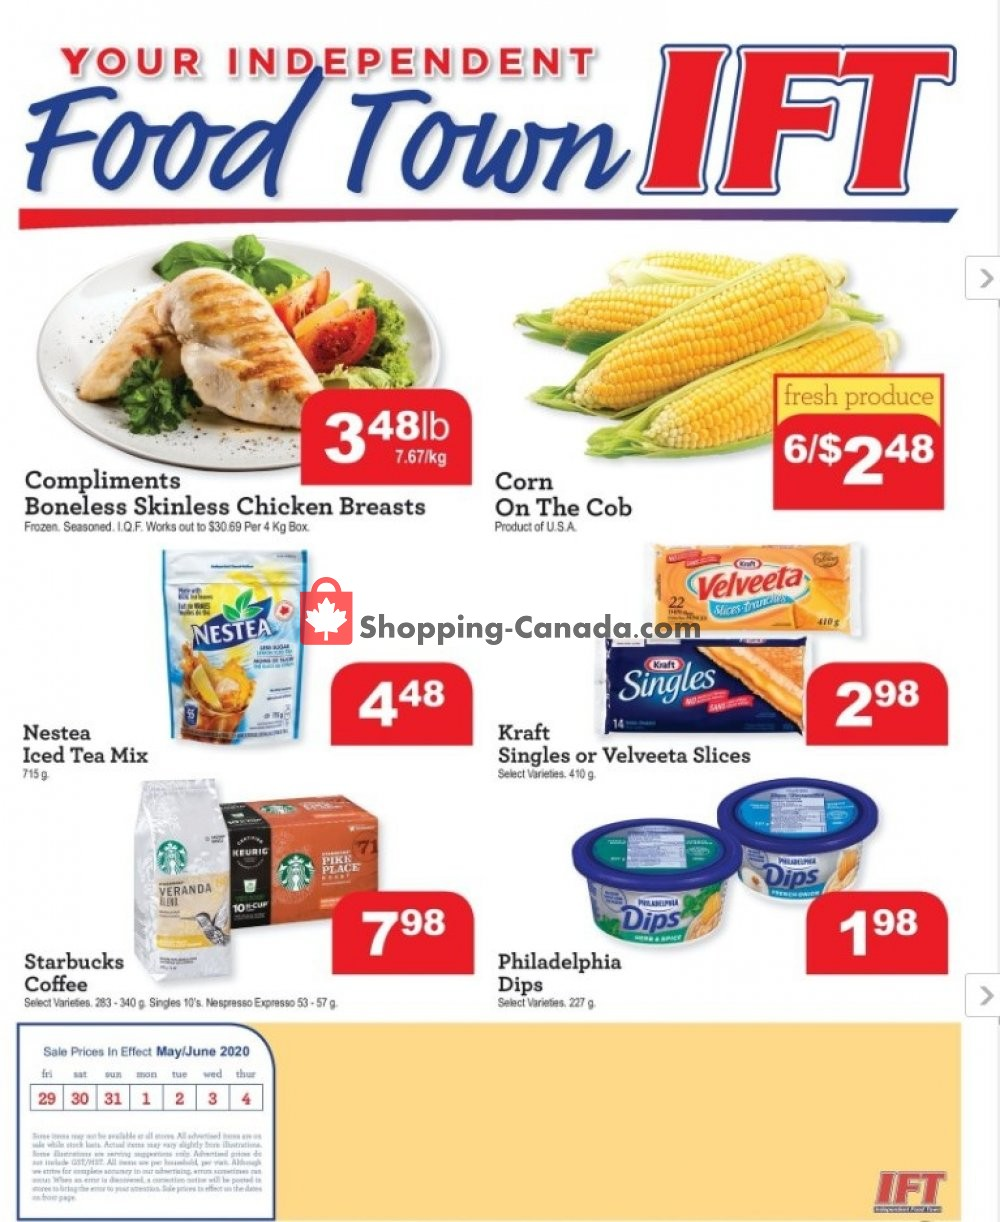 Flyer IFT Independent Food Town Canada - from Friday May 29, 2020 to Thursday June 4, 2020